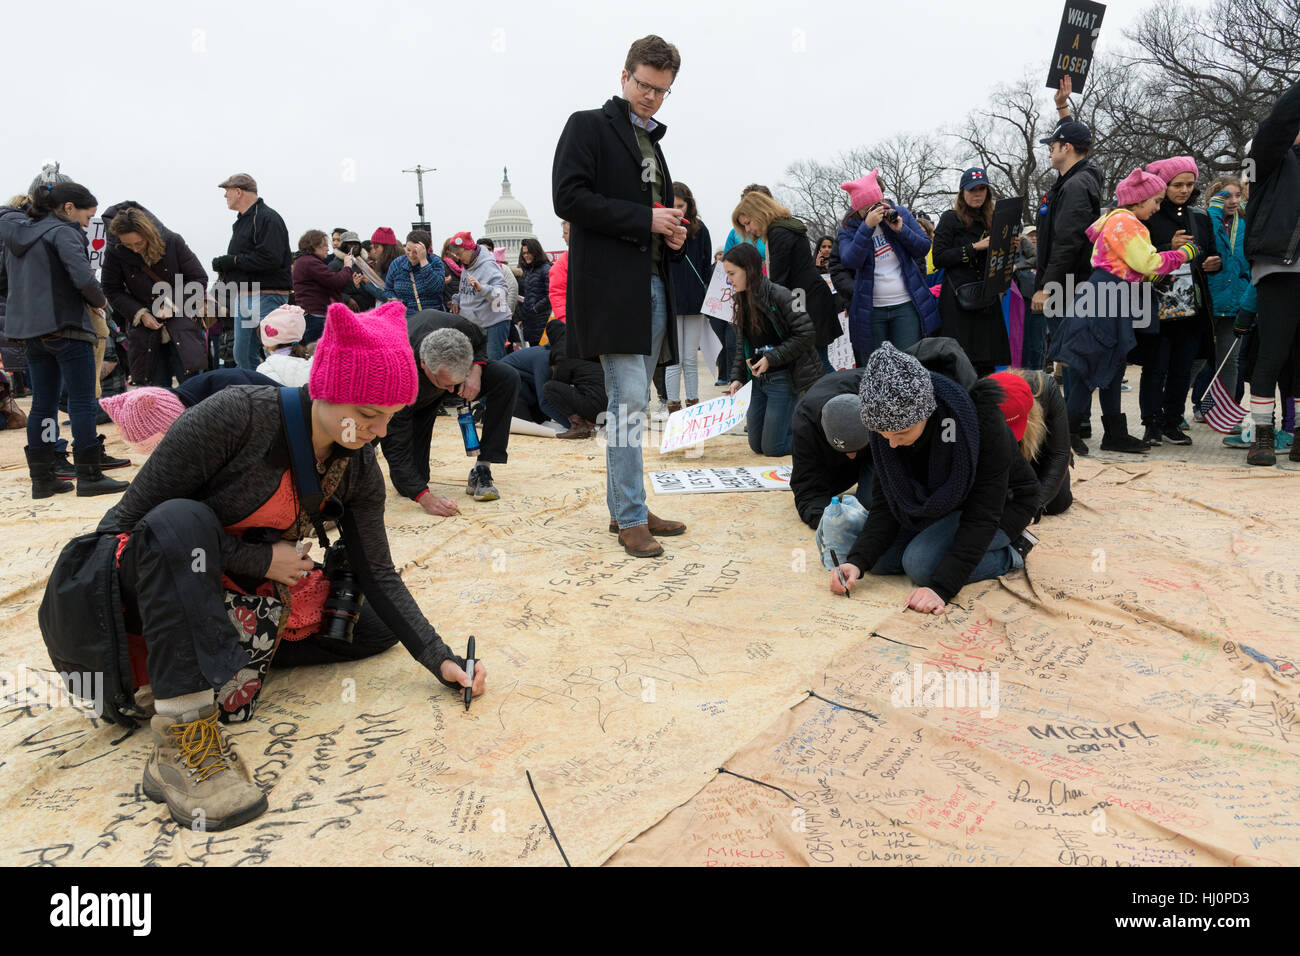 Washington, USA. 21st Jan, 2017.Demonstrators sign a giant petition during the Women's March on Washington in - Stock Image